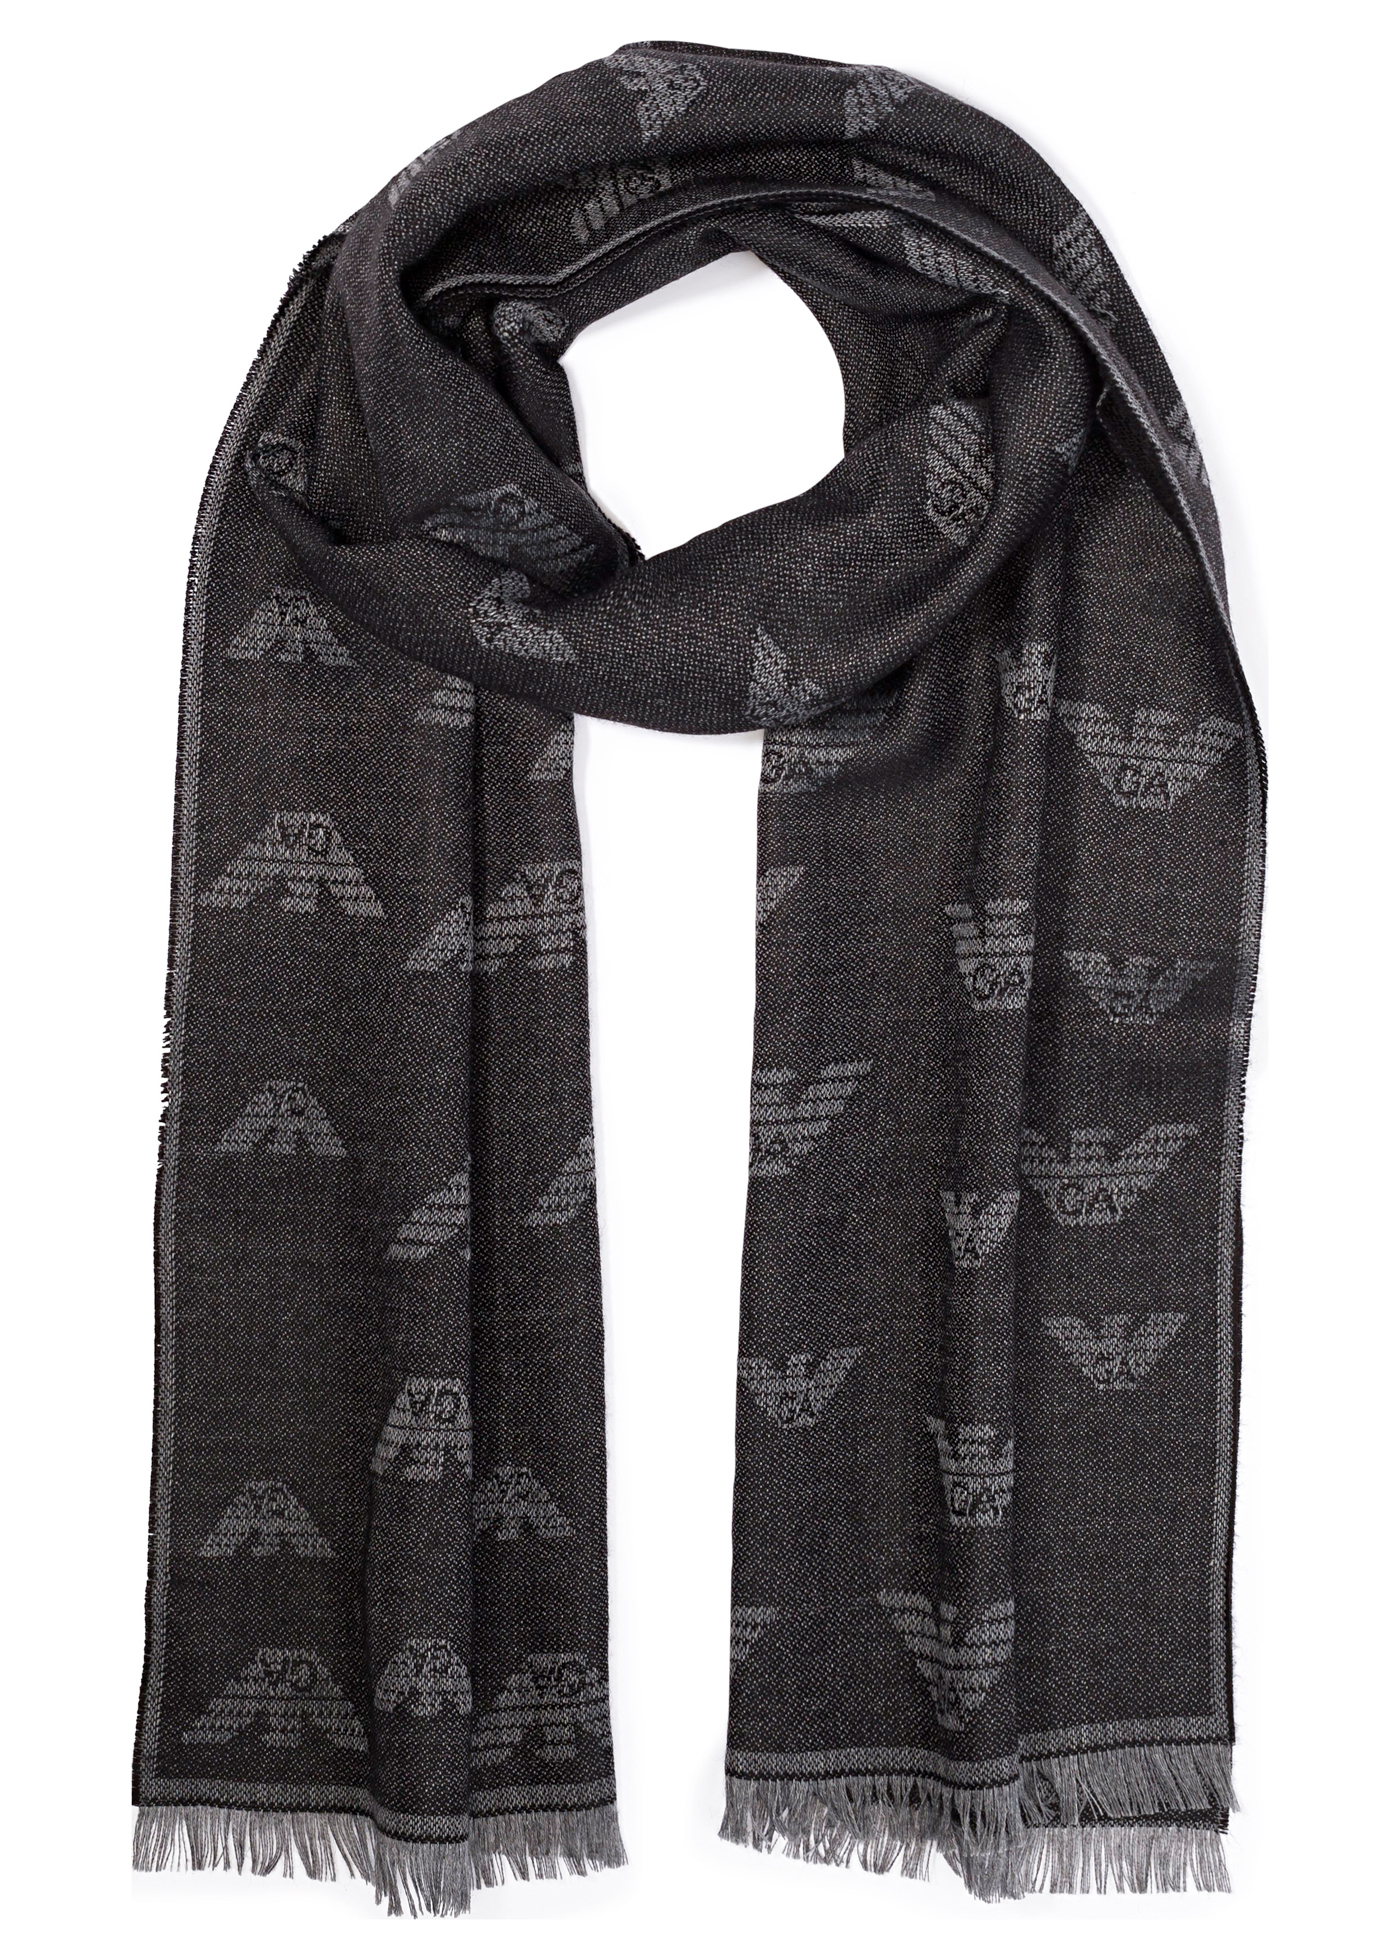 WOVEN SCARF 43X185 W image number 0